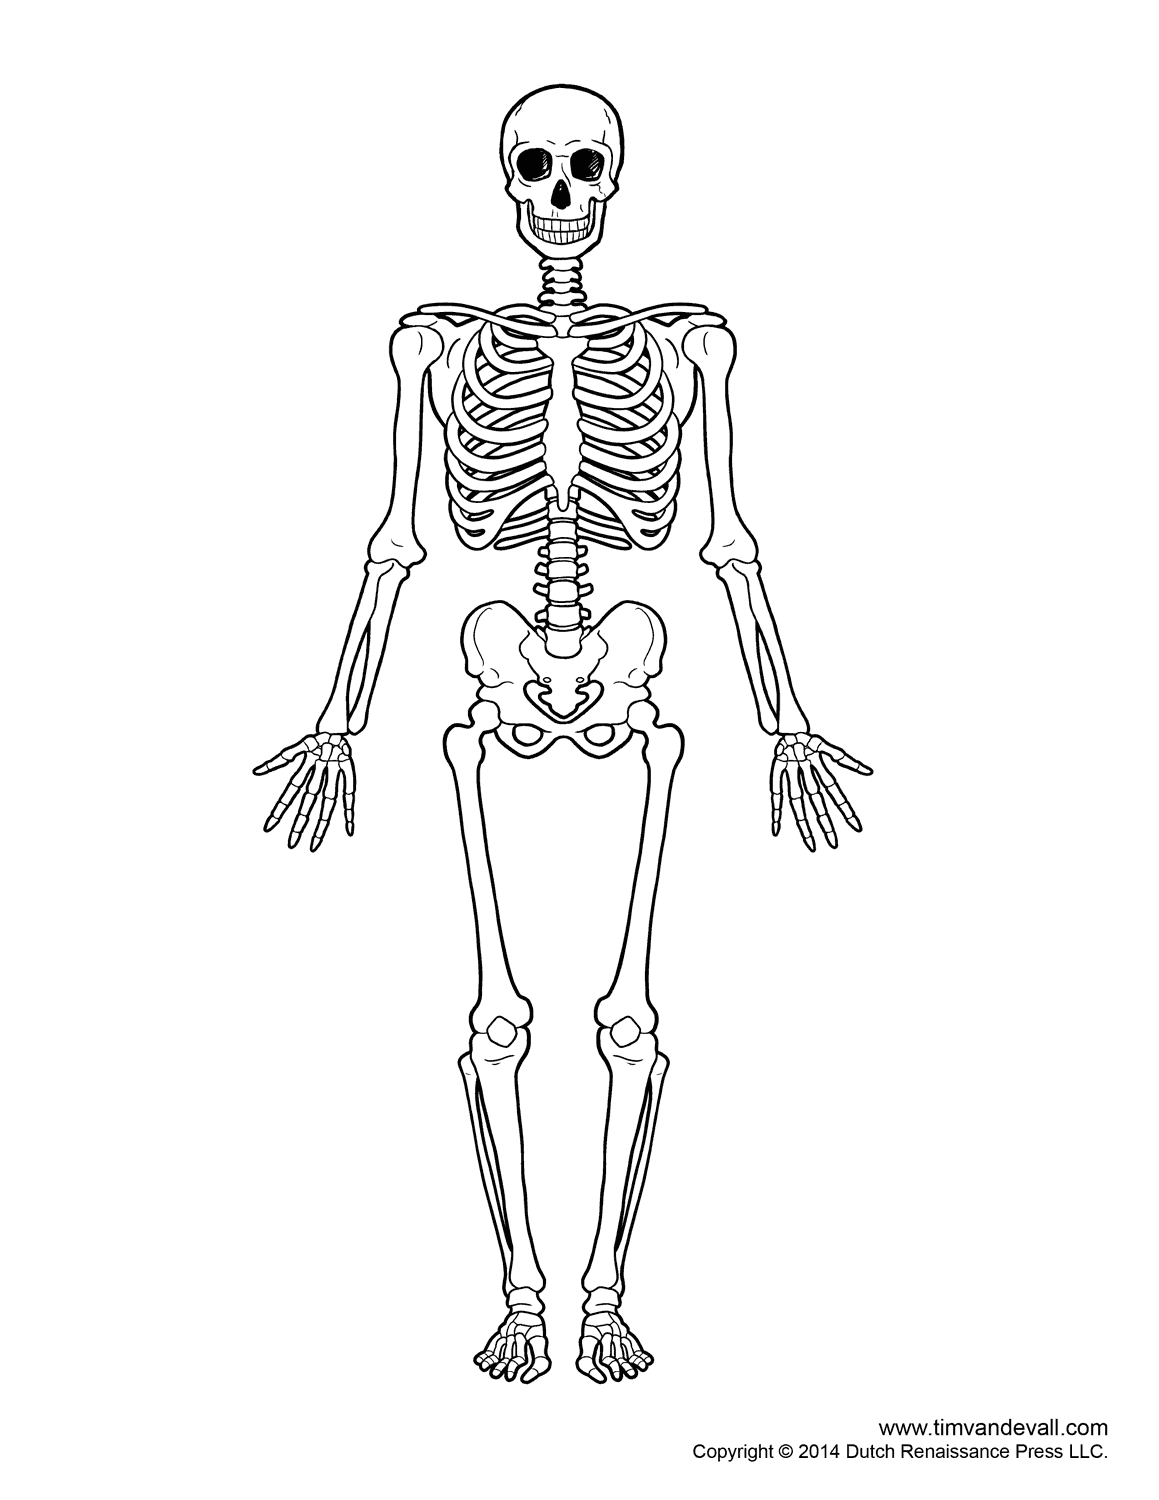 Skeleton Outline With Skeleton Images Collection 41